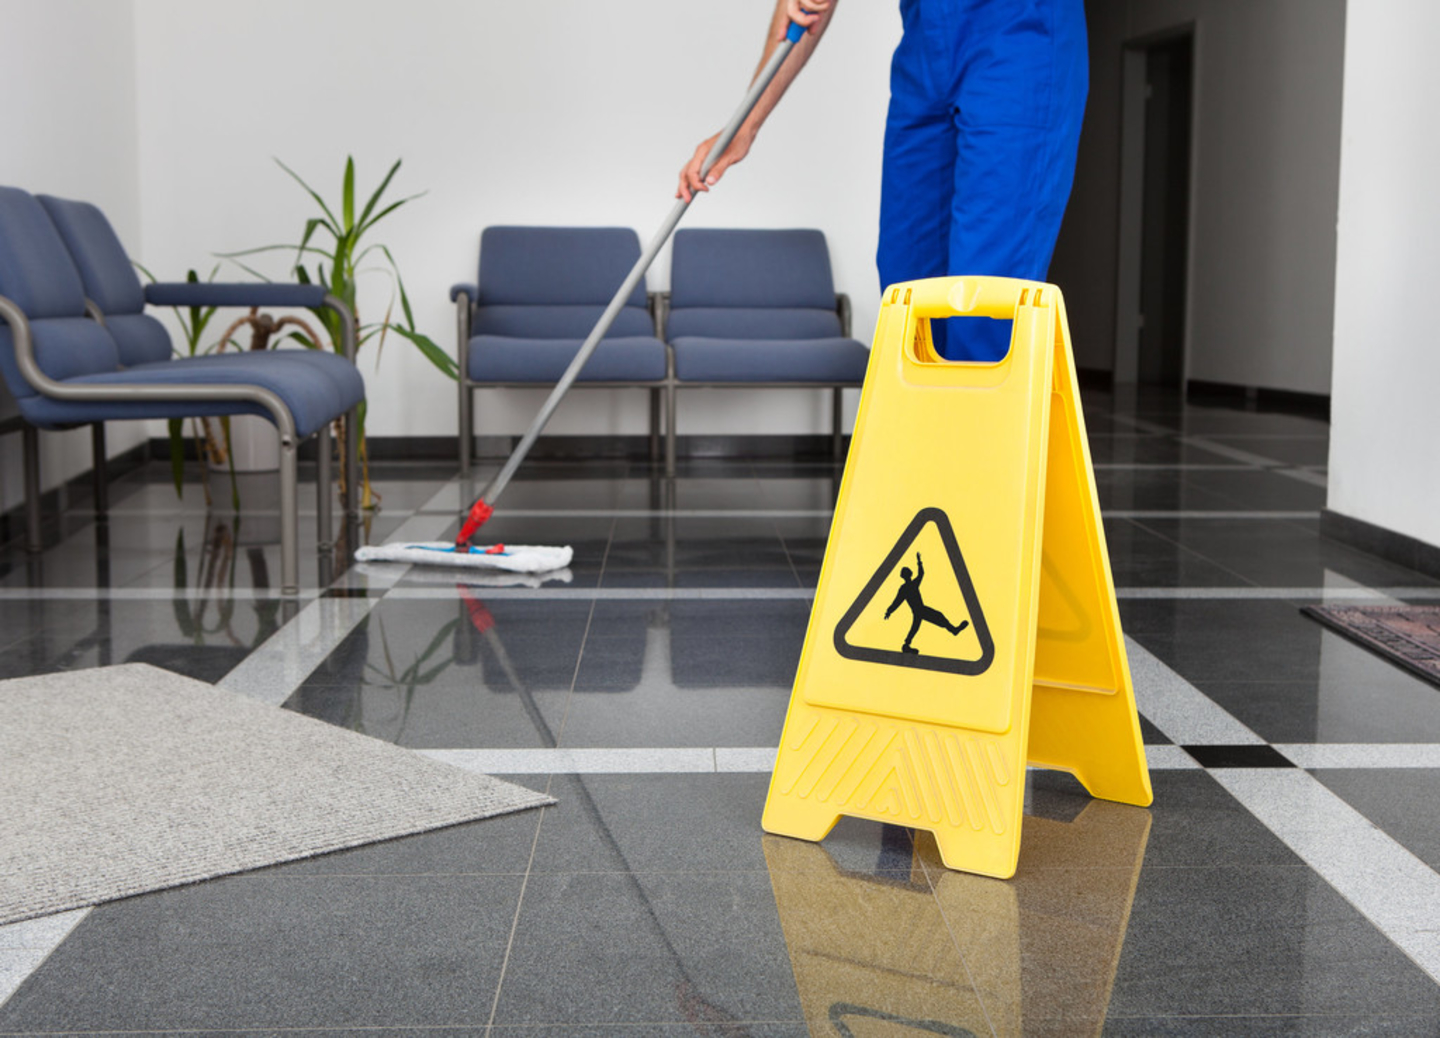 HiDubai-business-shiny-world-cleaning-services-home-cleaning-services-international-city-warsan-1-dubai-2